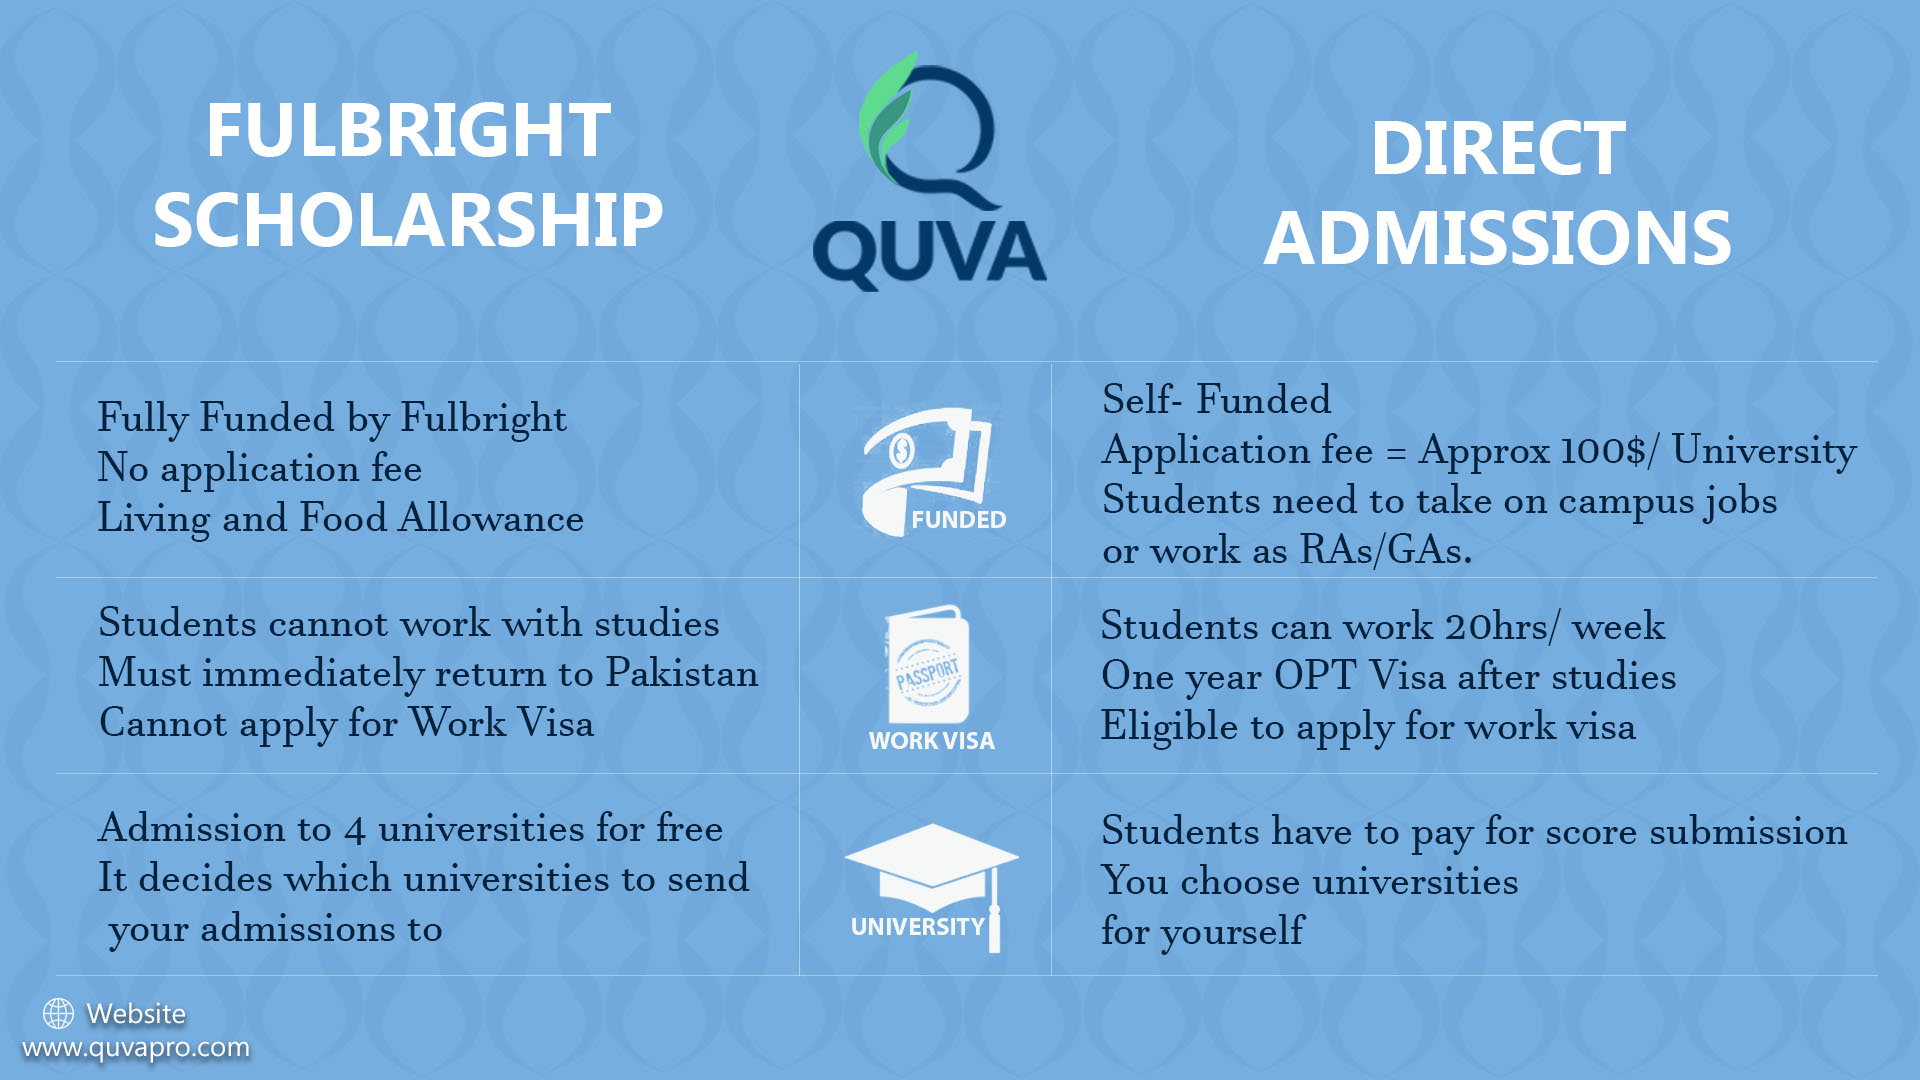 Fulbright-Scholarship-vs-Direct-Admission